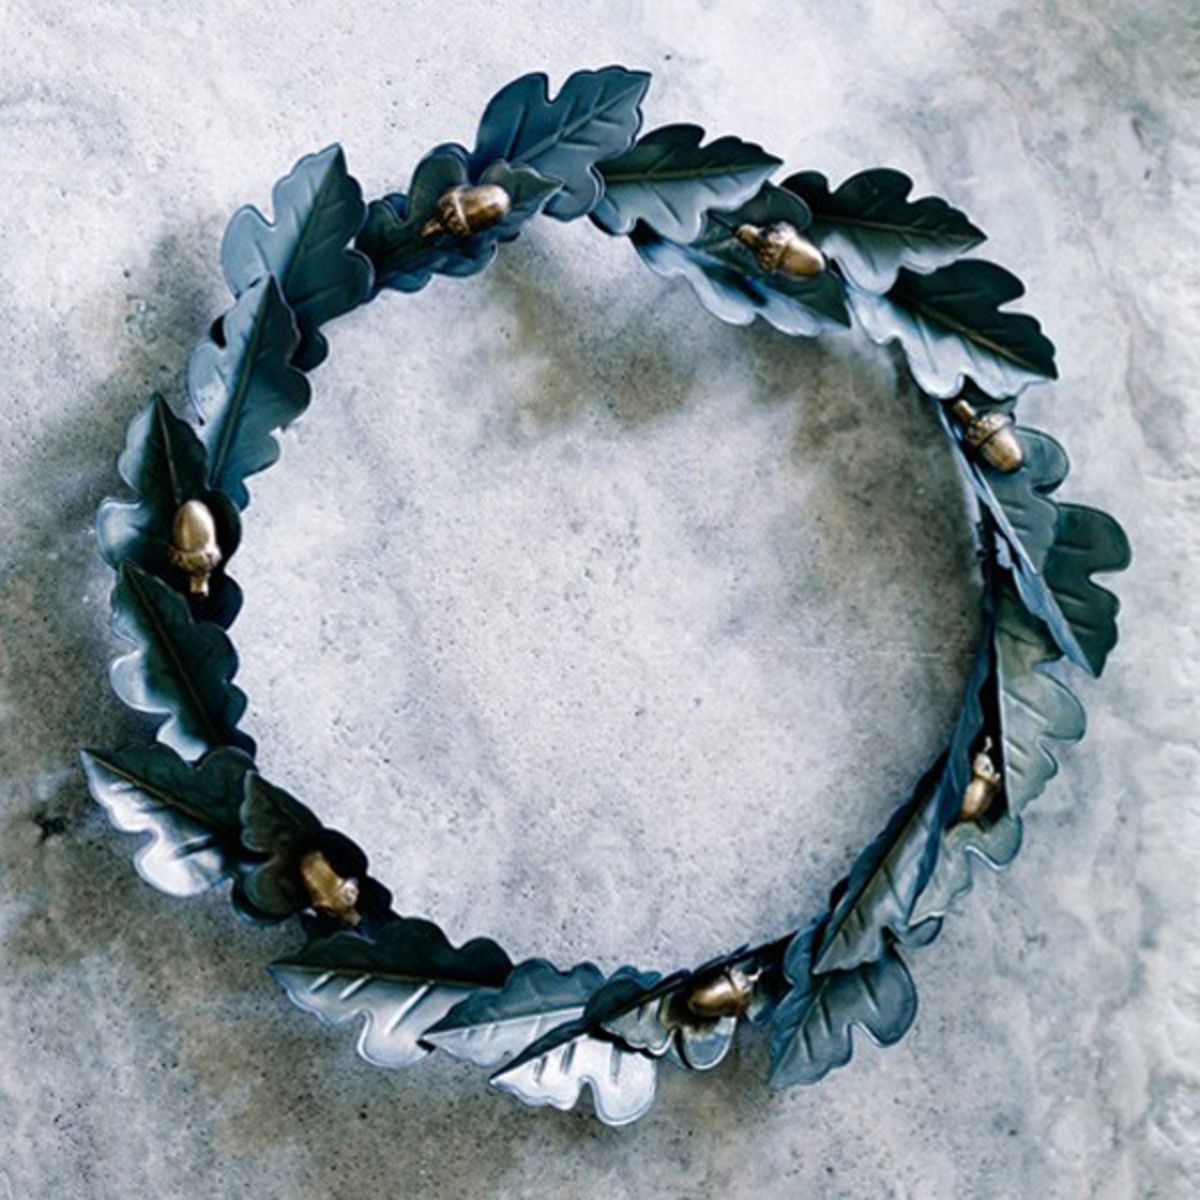 Beautiful and festive metal wreaths using unique handmade patina and gold leaf copper leaves!